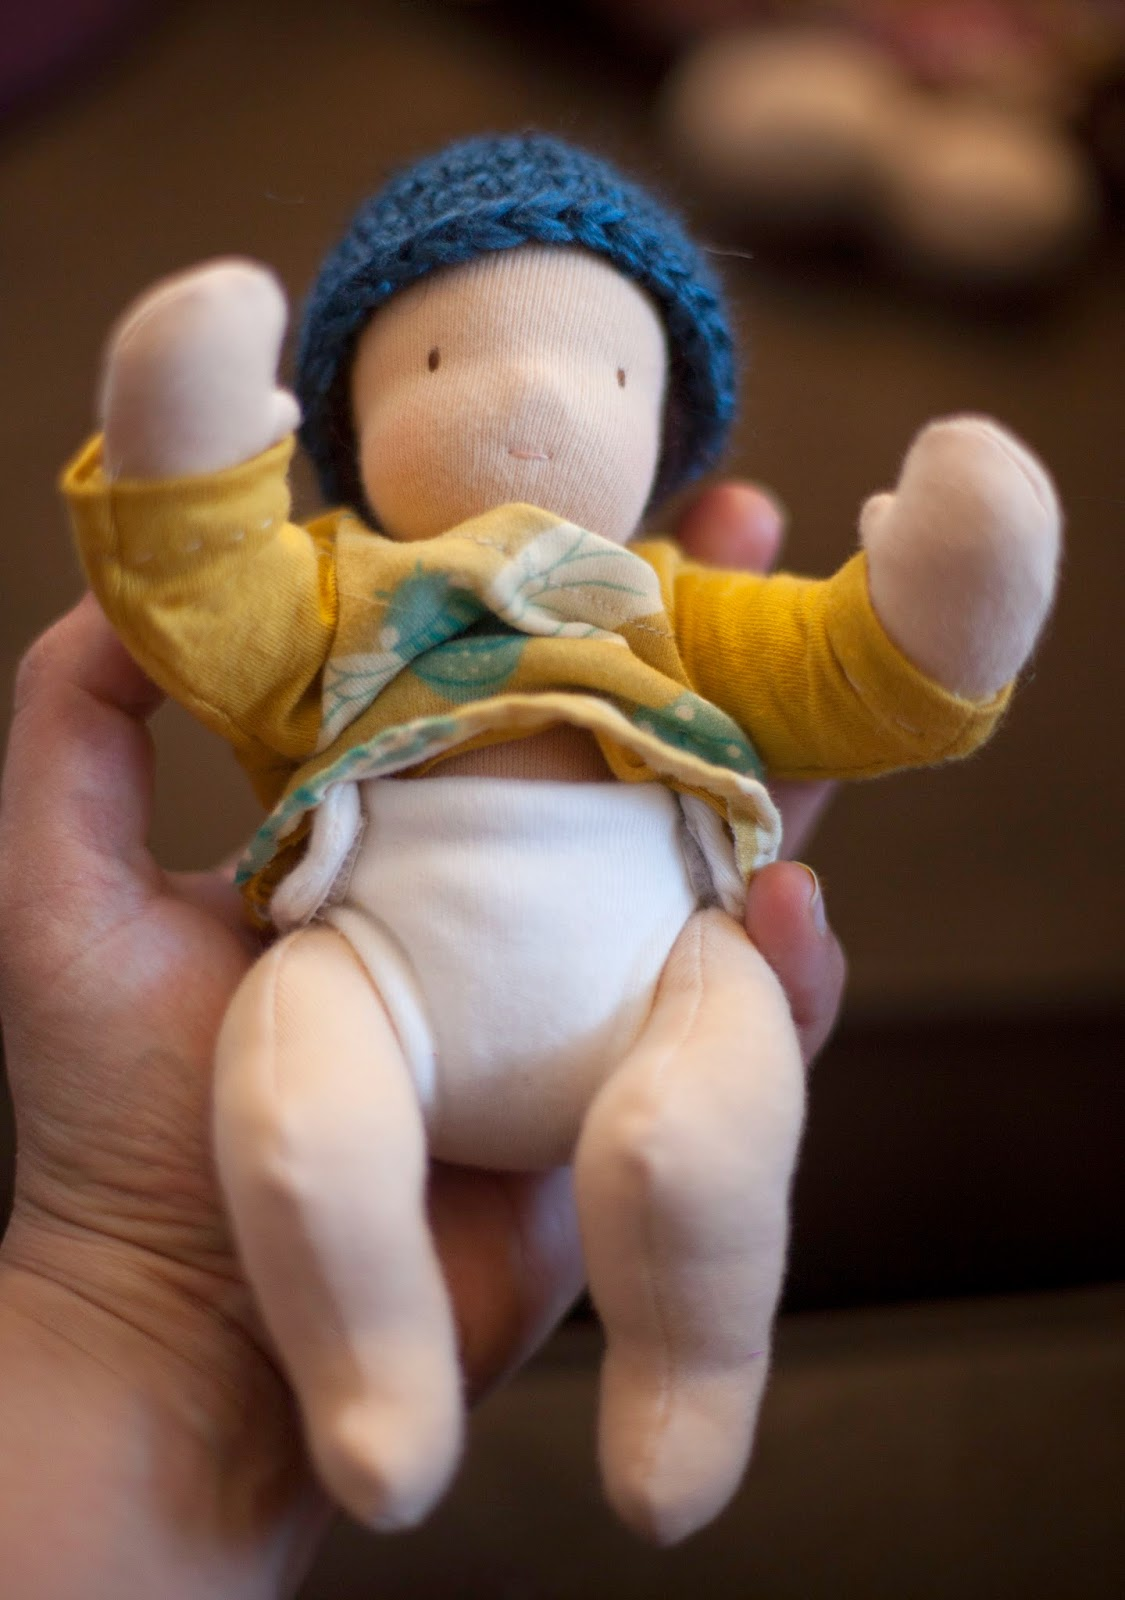 UNLIKELY: Tiny Waldorf Baby Doll